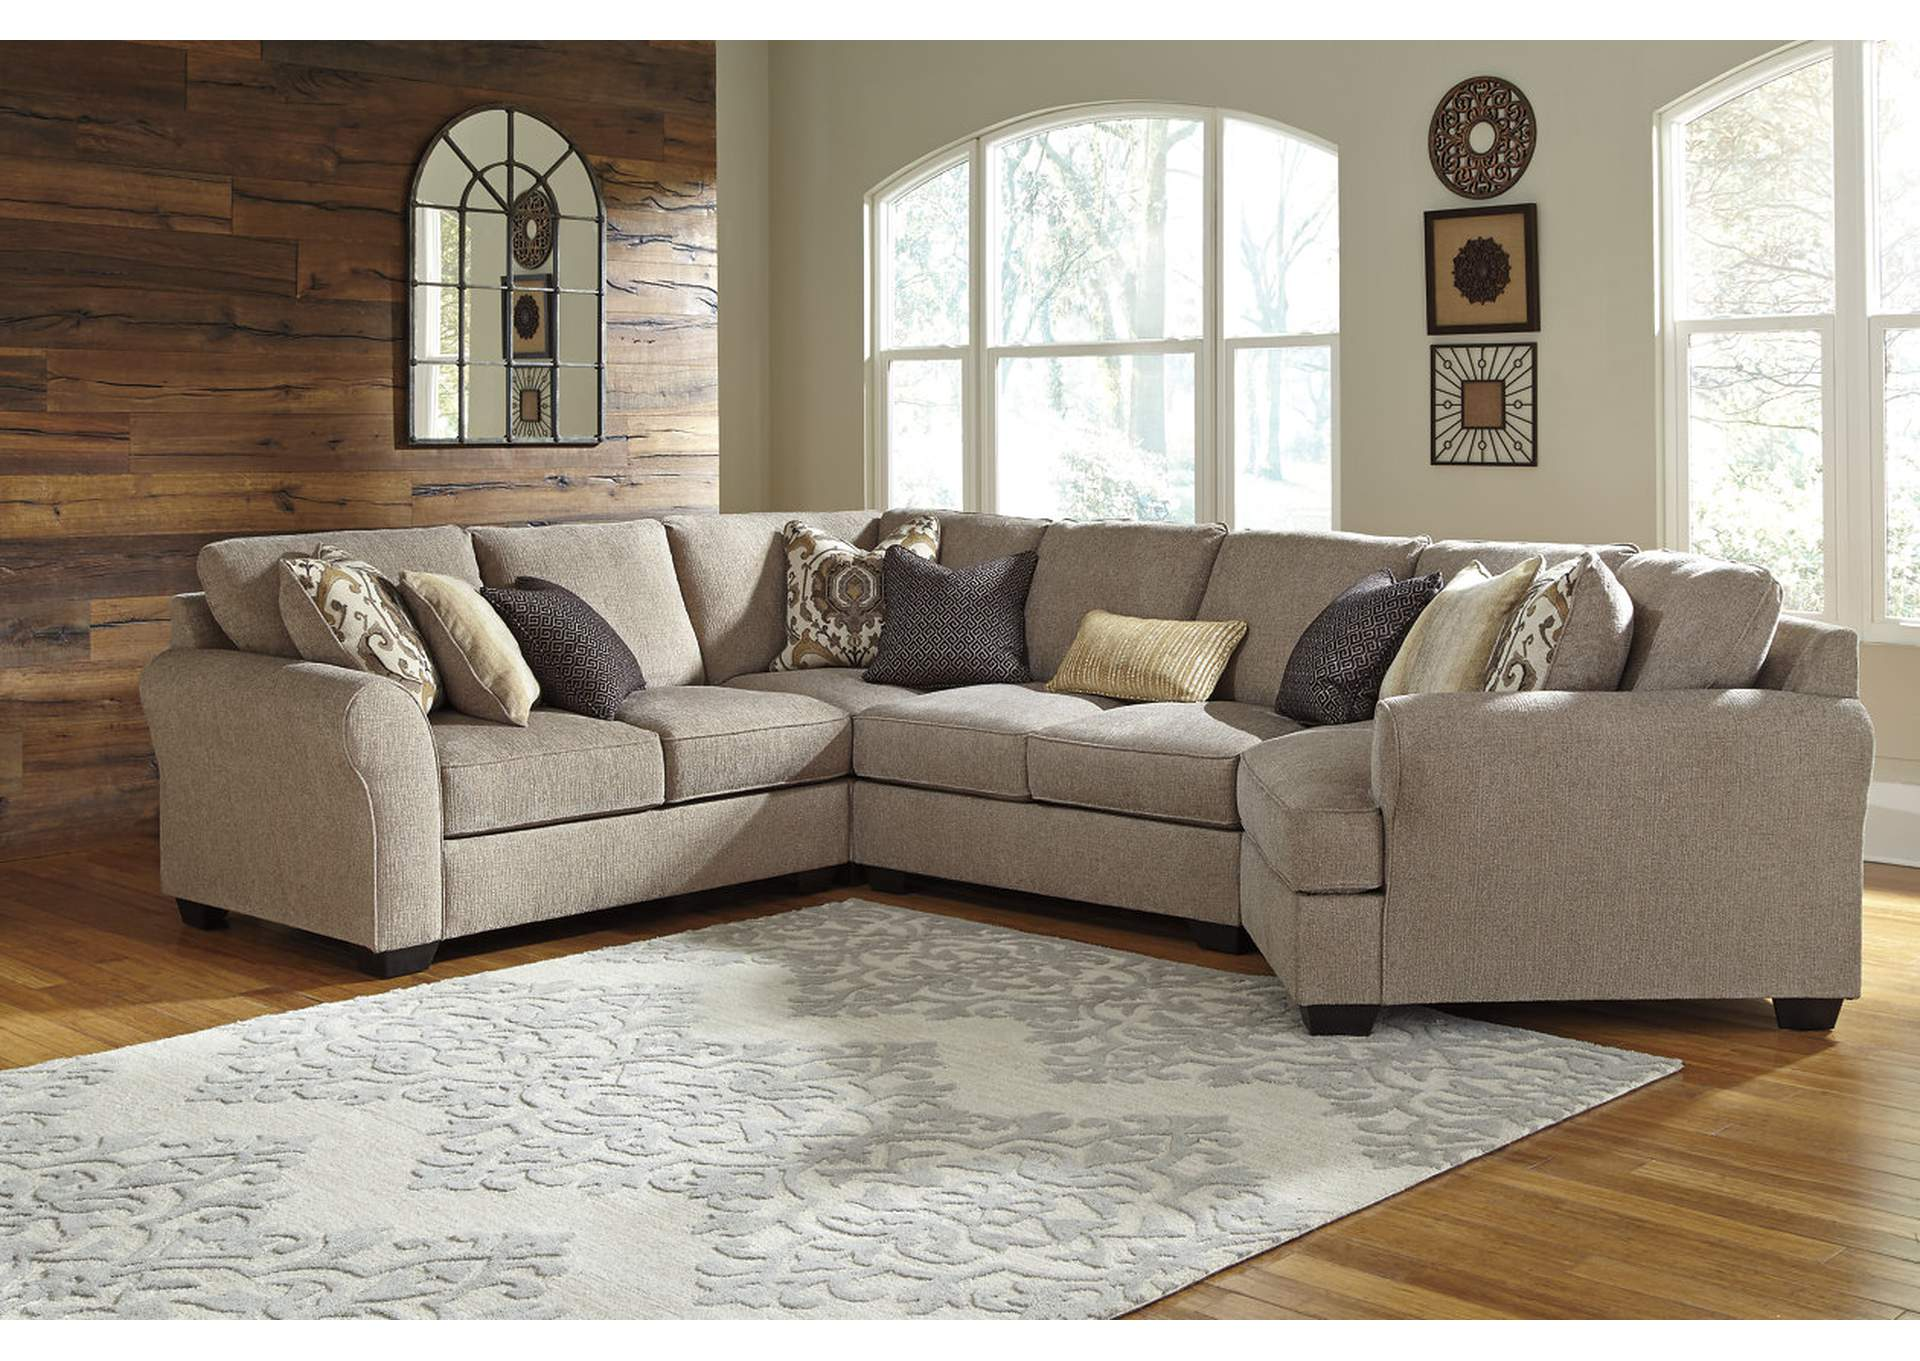 Pantomine Driftwood Sectional w/Right Facing Cuddler,ABF Benchcraft